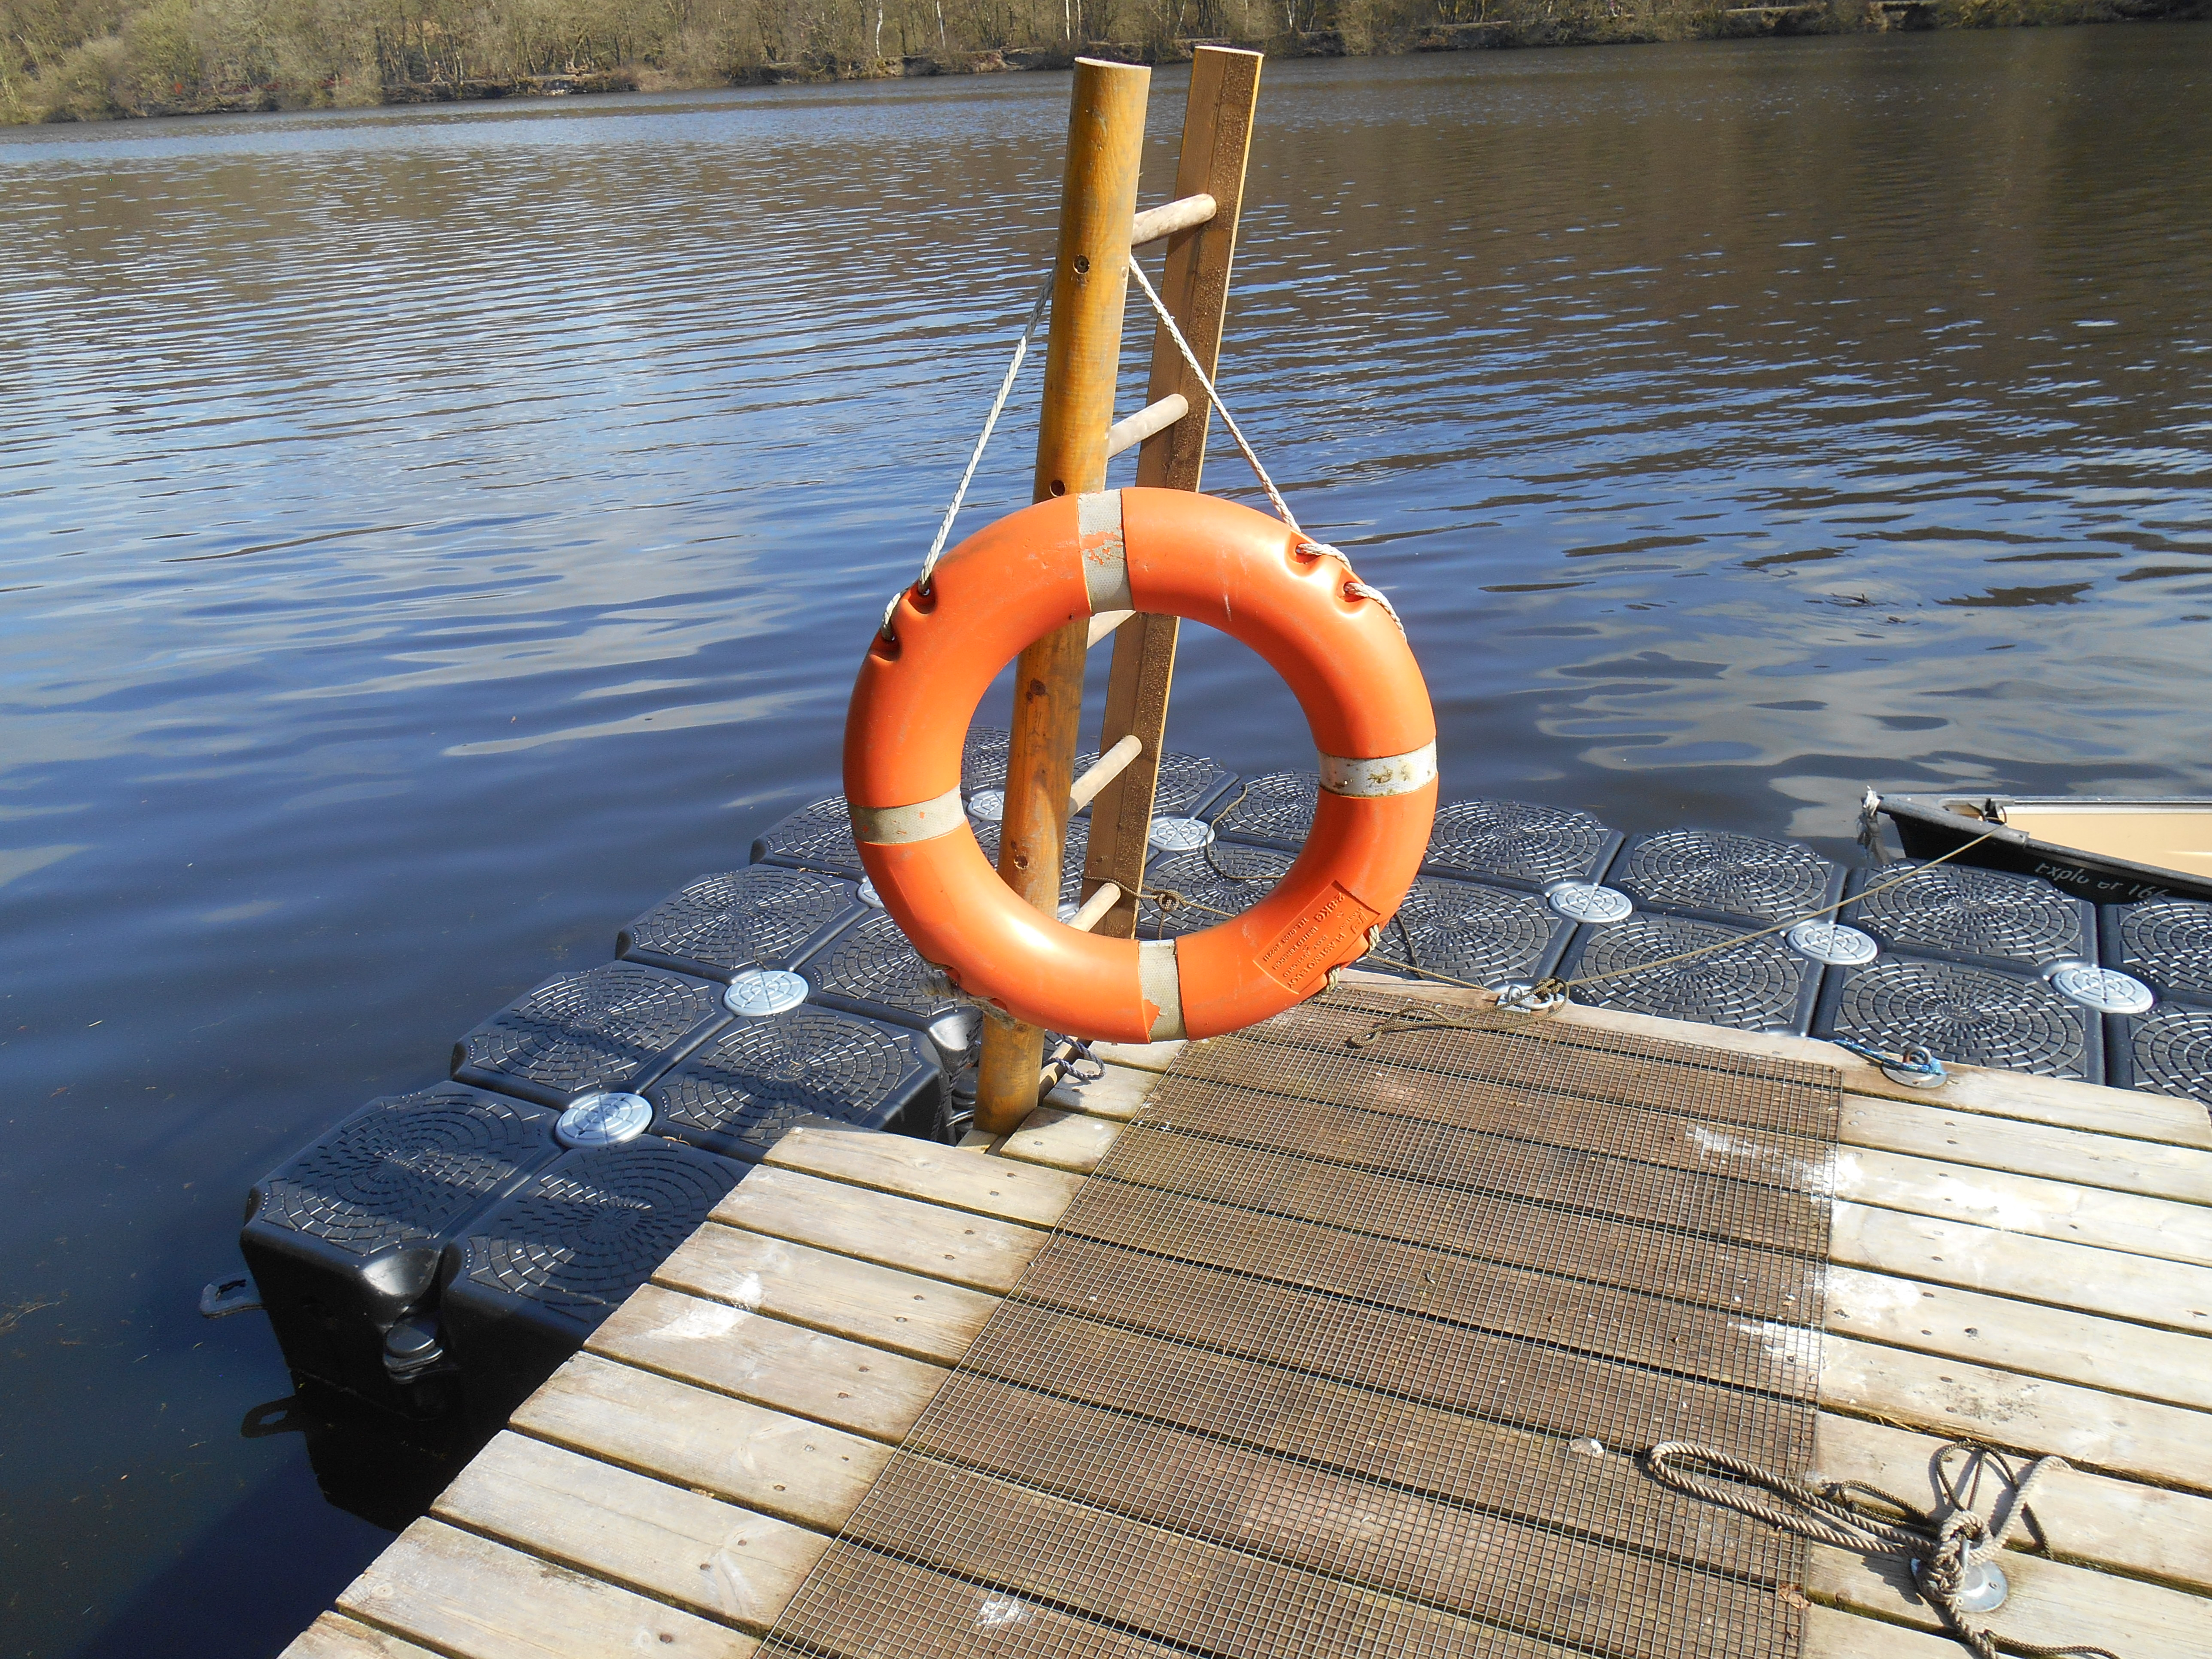 Floating jetty: view from glamping pod.